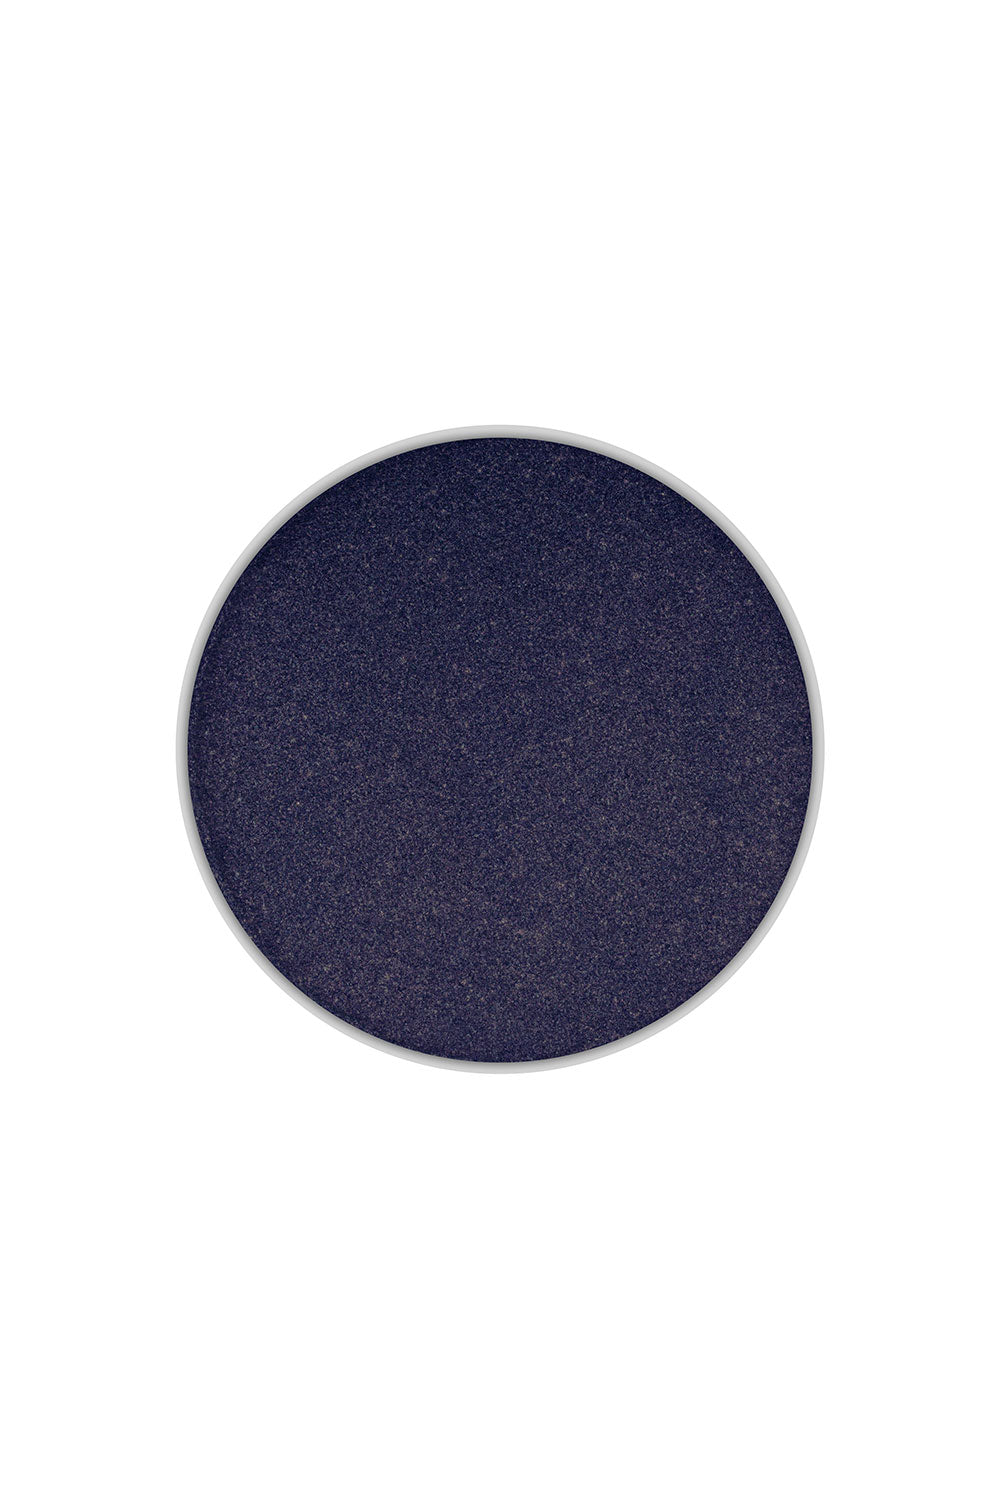 Type 4 Eyeshadow Pan - Twilight